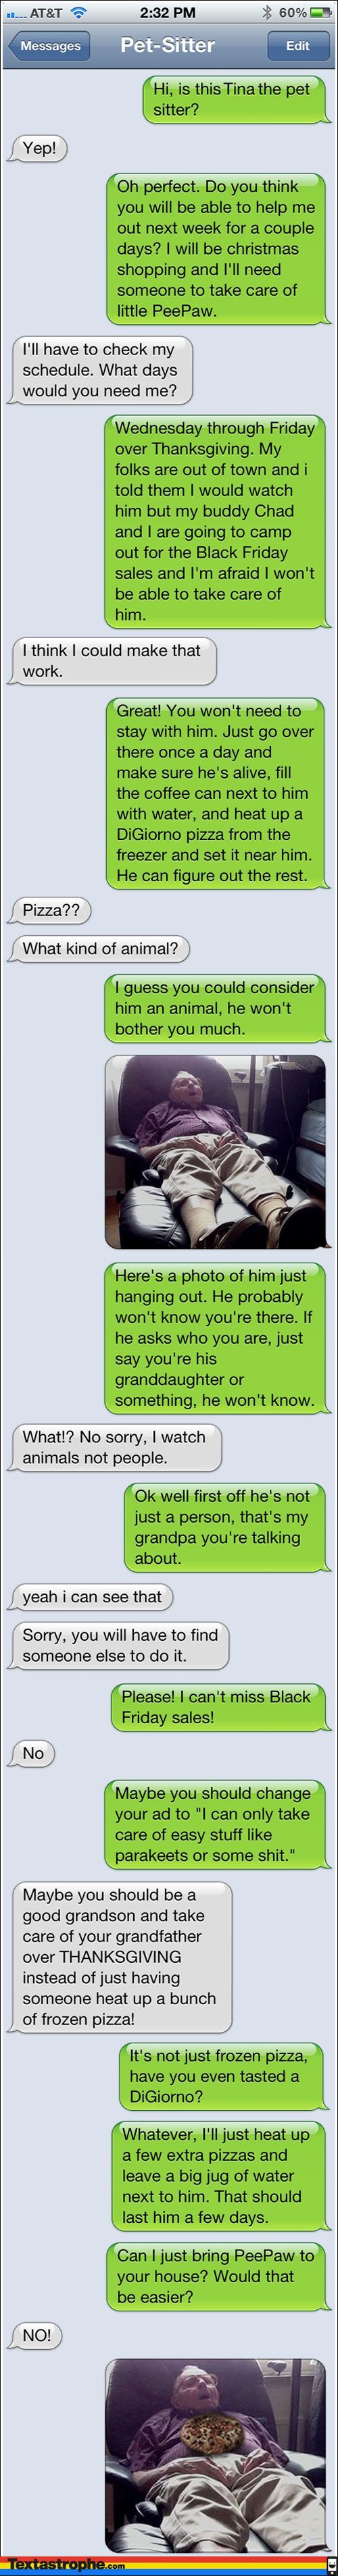 Pet Sitter Text Prank